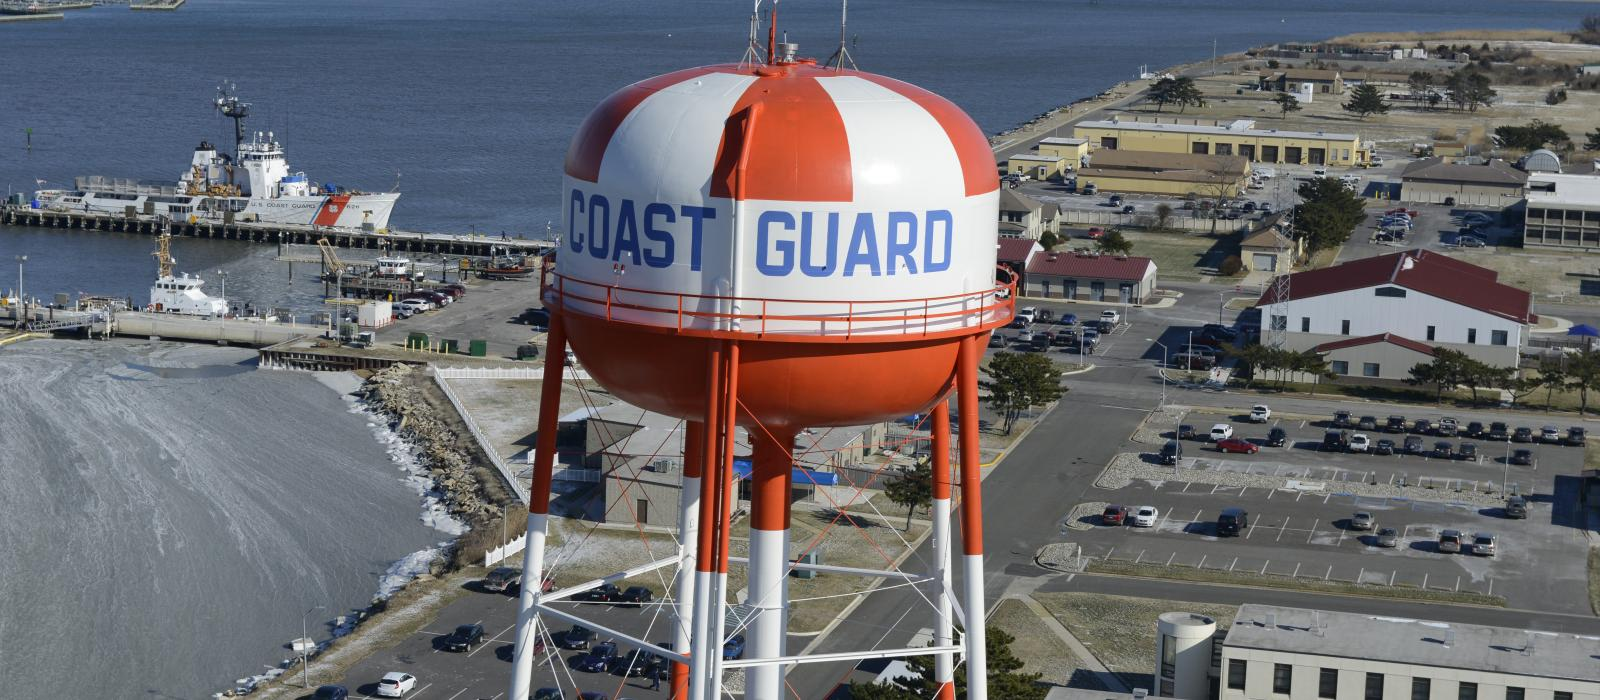 Aerial photo of the USCG water tower in Cape May, NJ